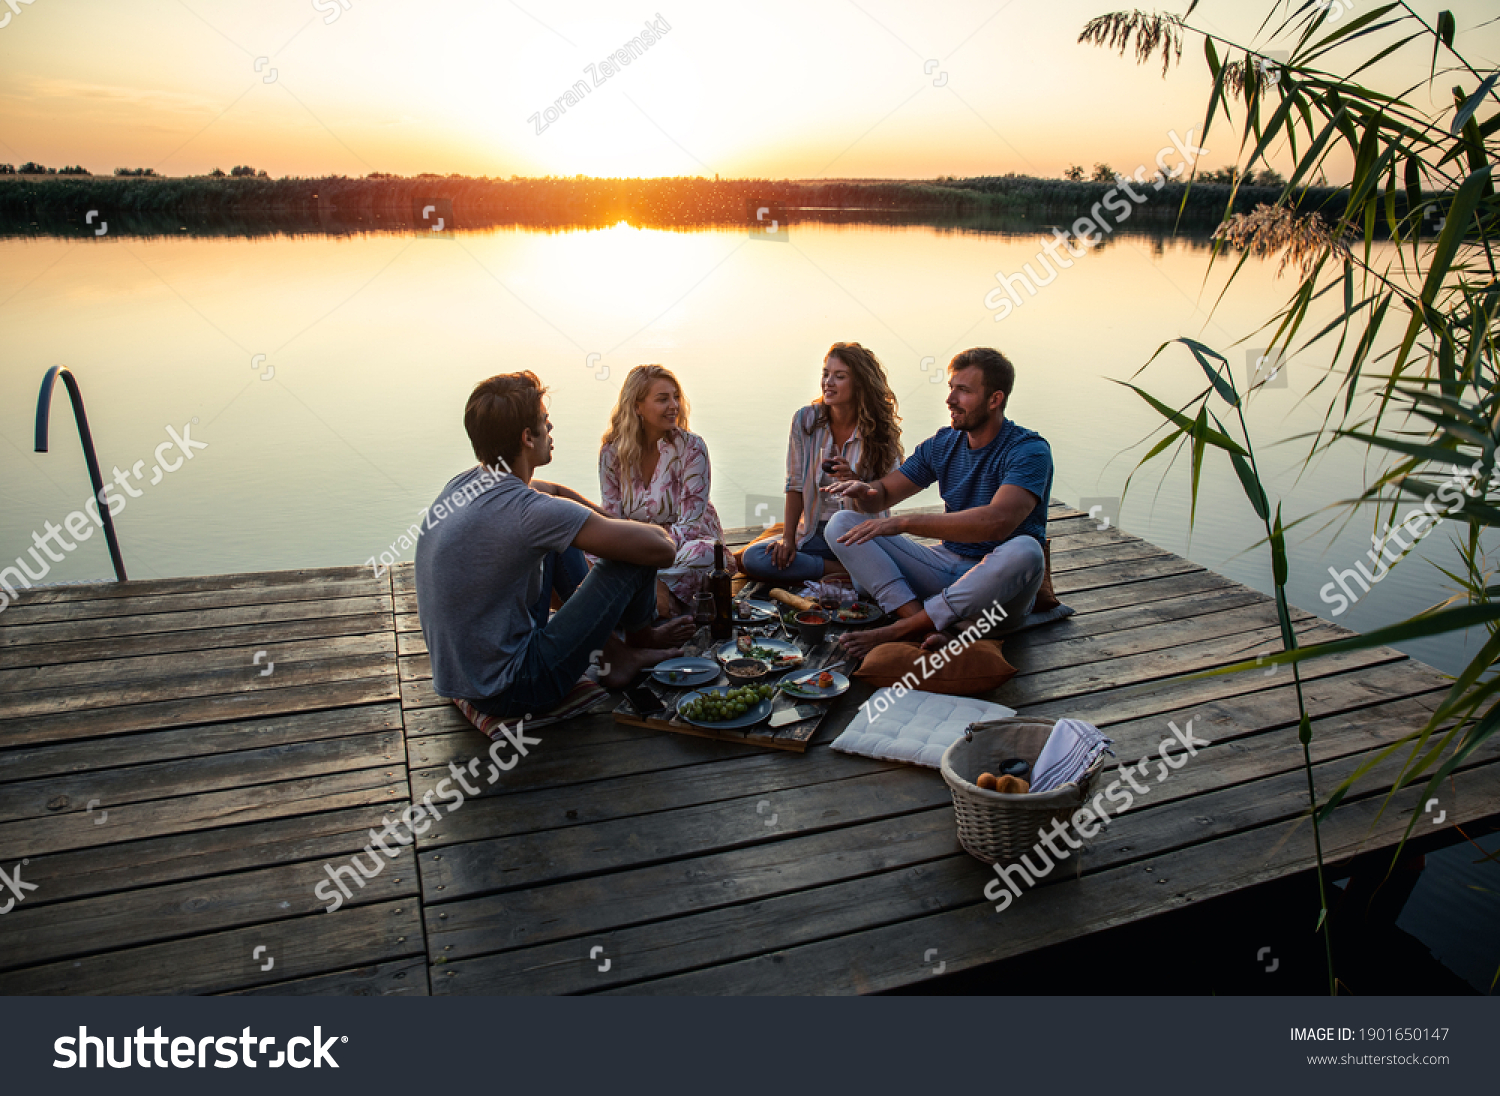 Group of friends having fun on picnic near a lake, sitting on pier eating and drinking wine. #1901650147